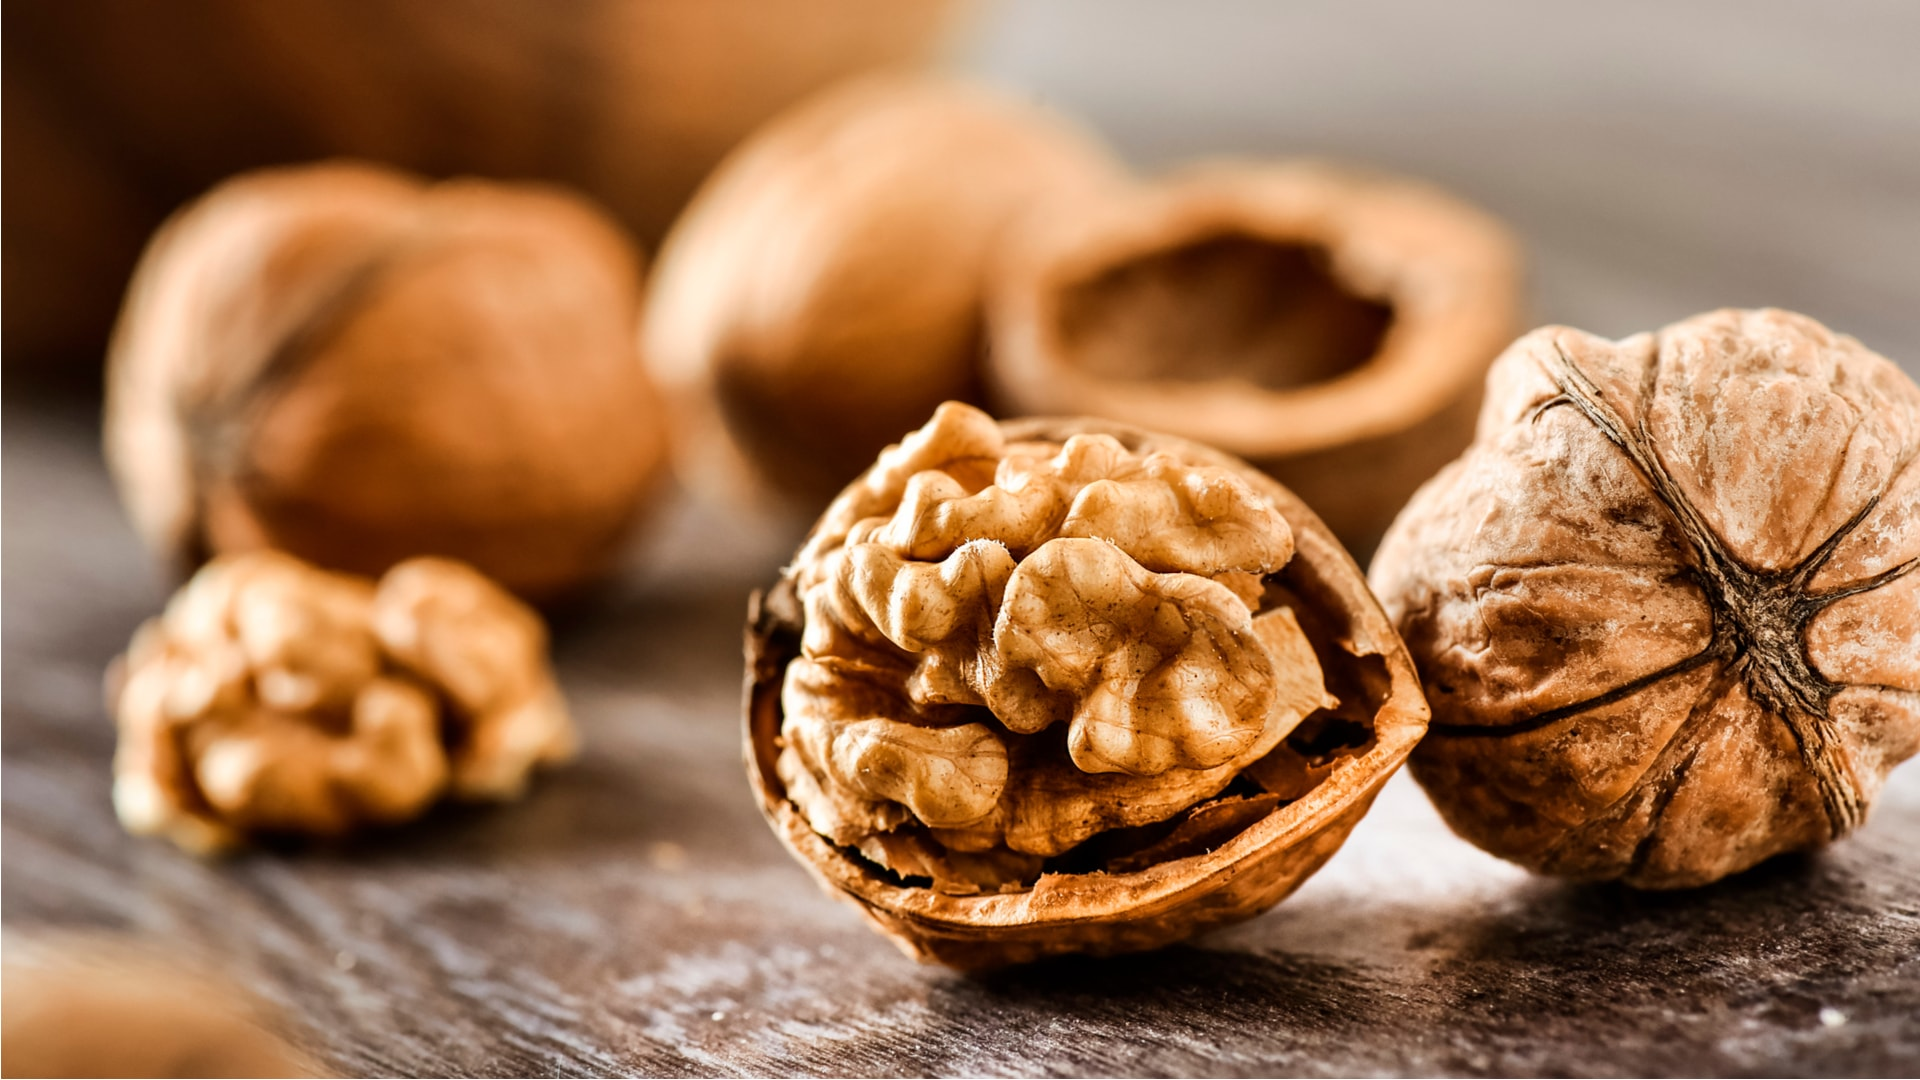 Walnuts Can Help Fight Cancer